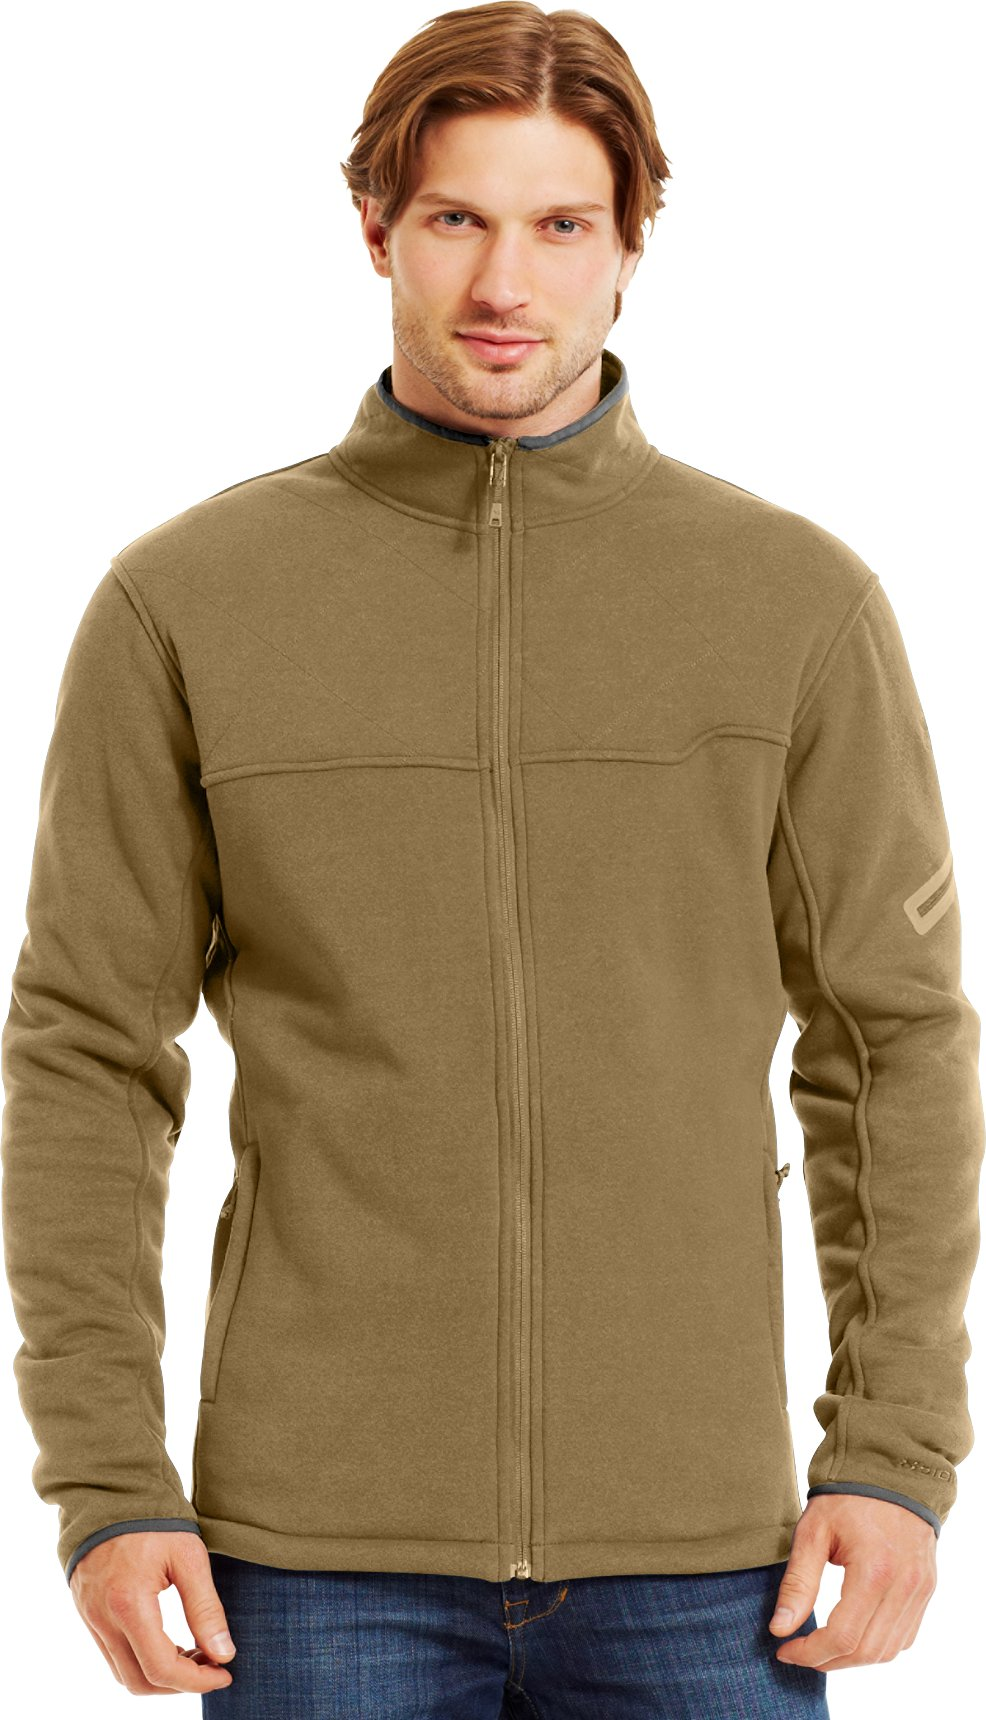 Men's Extreme ColdGear® Jacket, DEER HIDE, Front